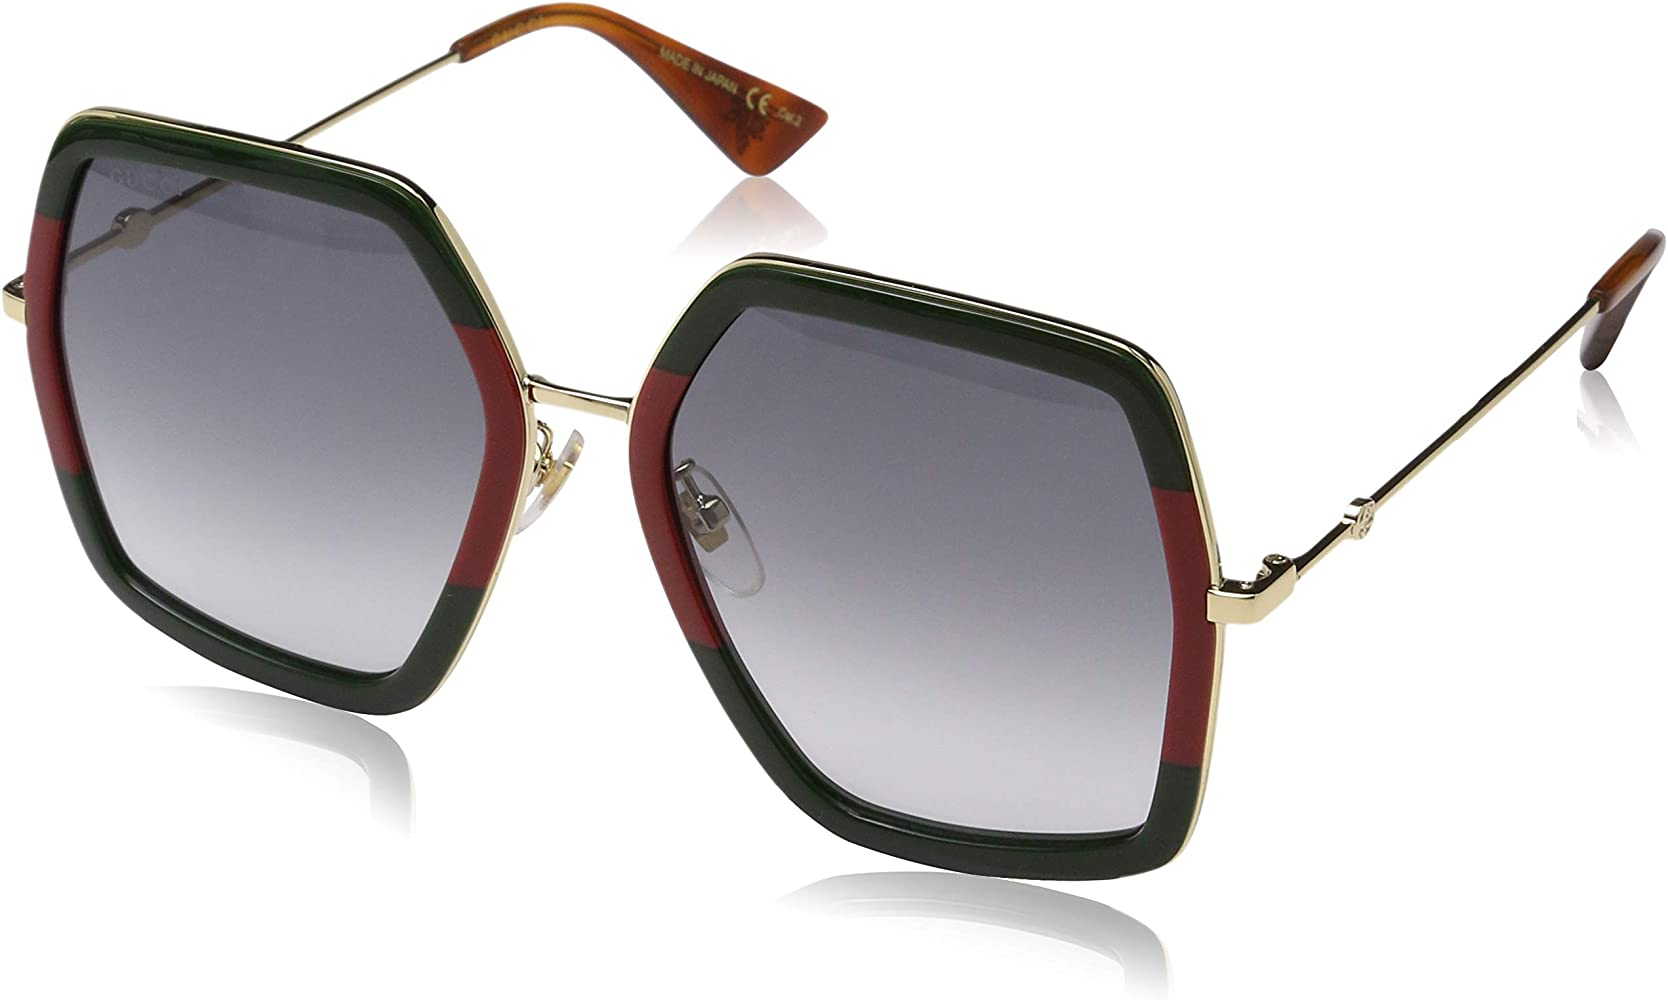 GG 0106 S- GG0106S Sunglasses 56mm